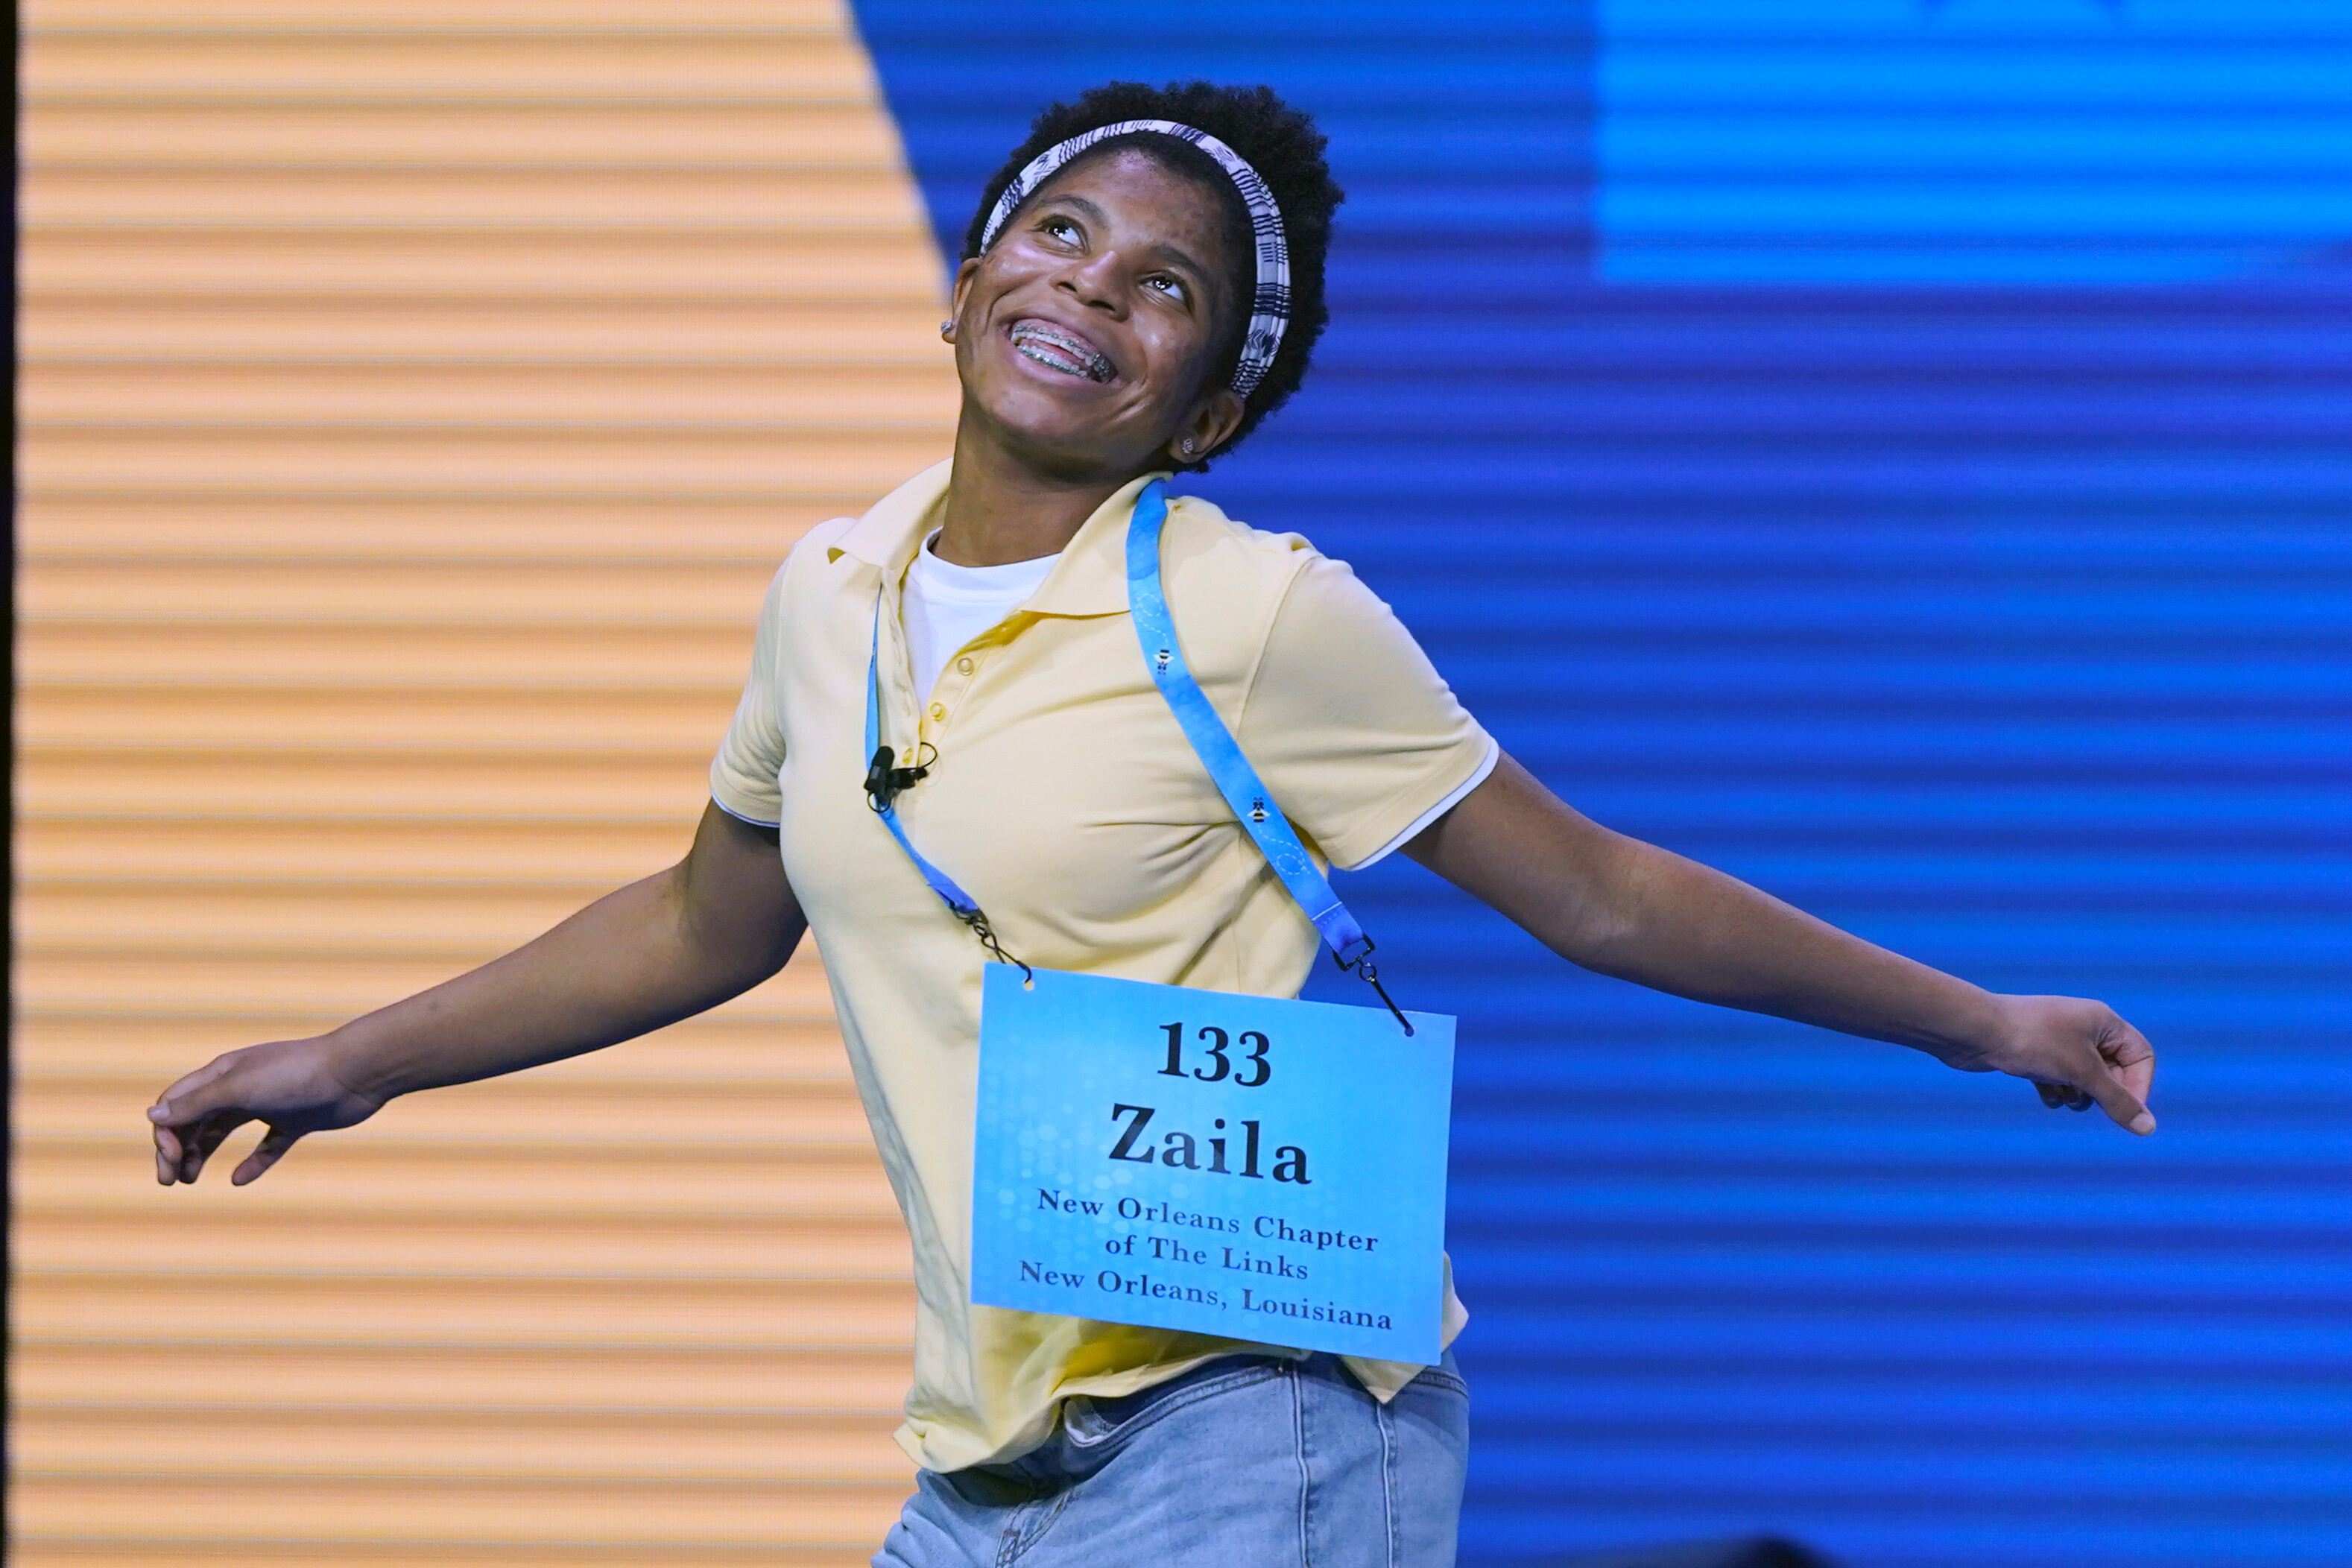 Before Zaila Avant-garde, there was MacNolia Cox, the first Black top-5 finalist at the National Spelling Bee